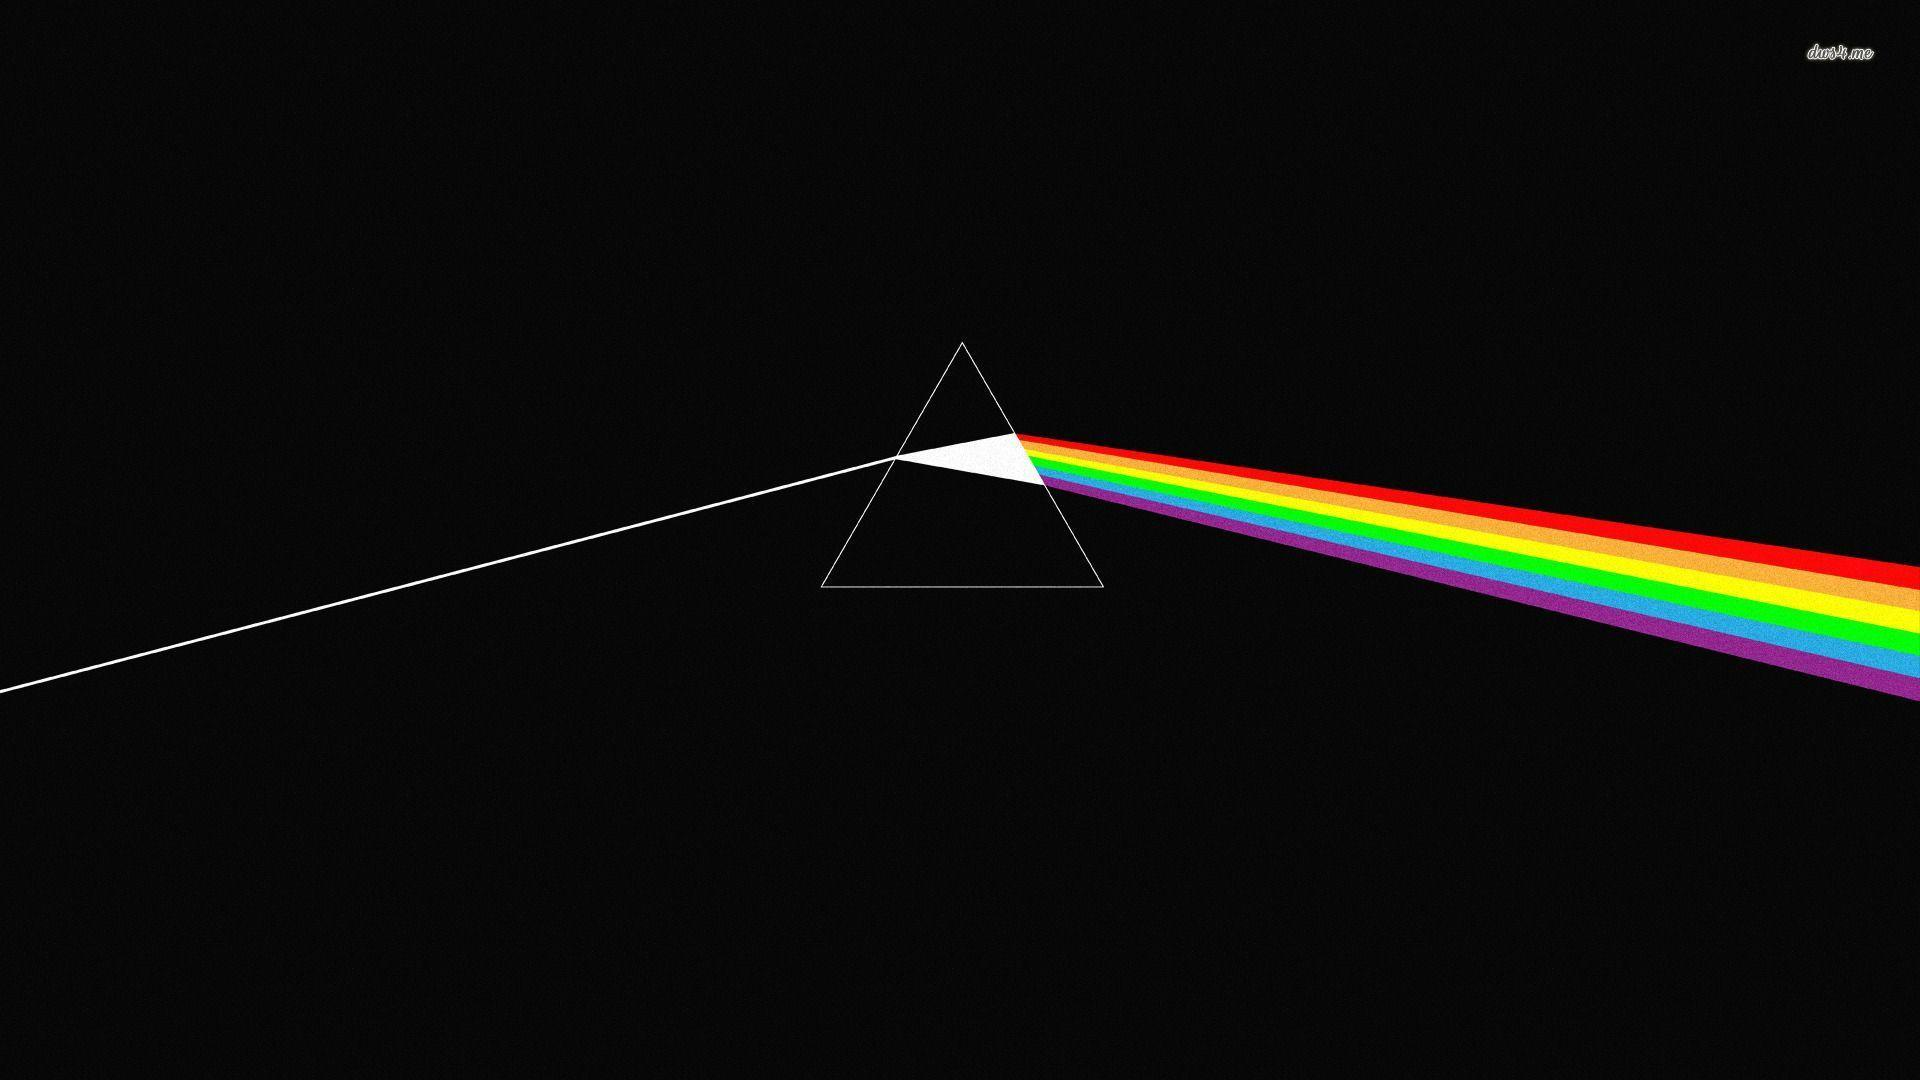 The dark side of the moon clipart jpg freeuse library The Dark Side Of The Moon HD Wallpapers - Wallpaper Cave jpg freeuse library